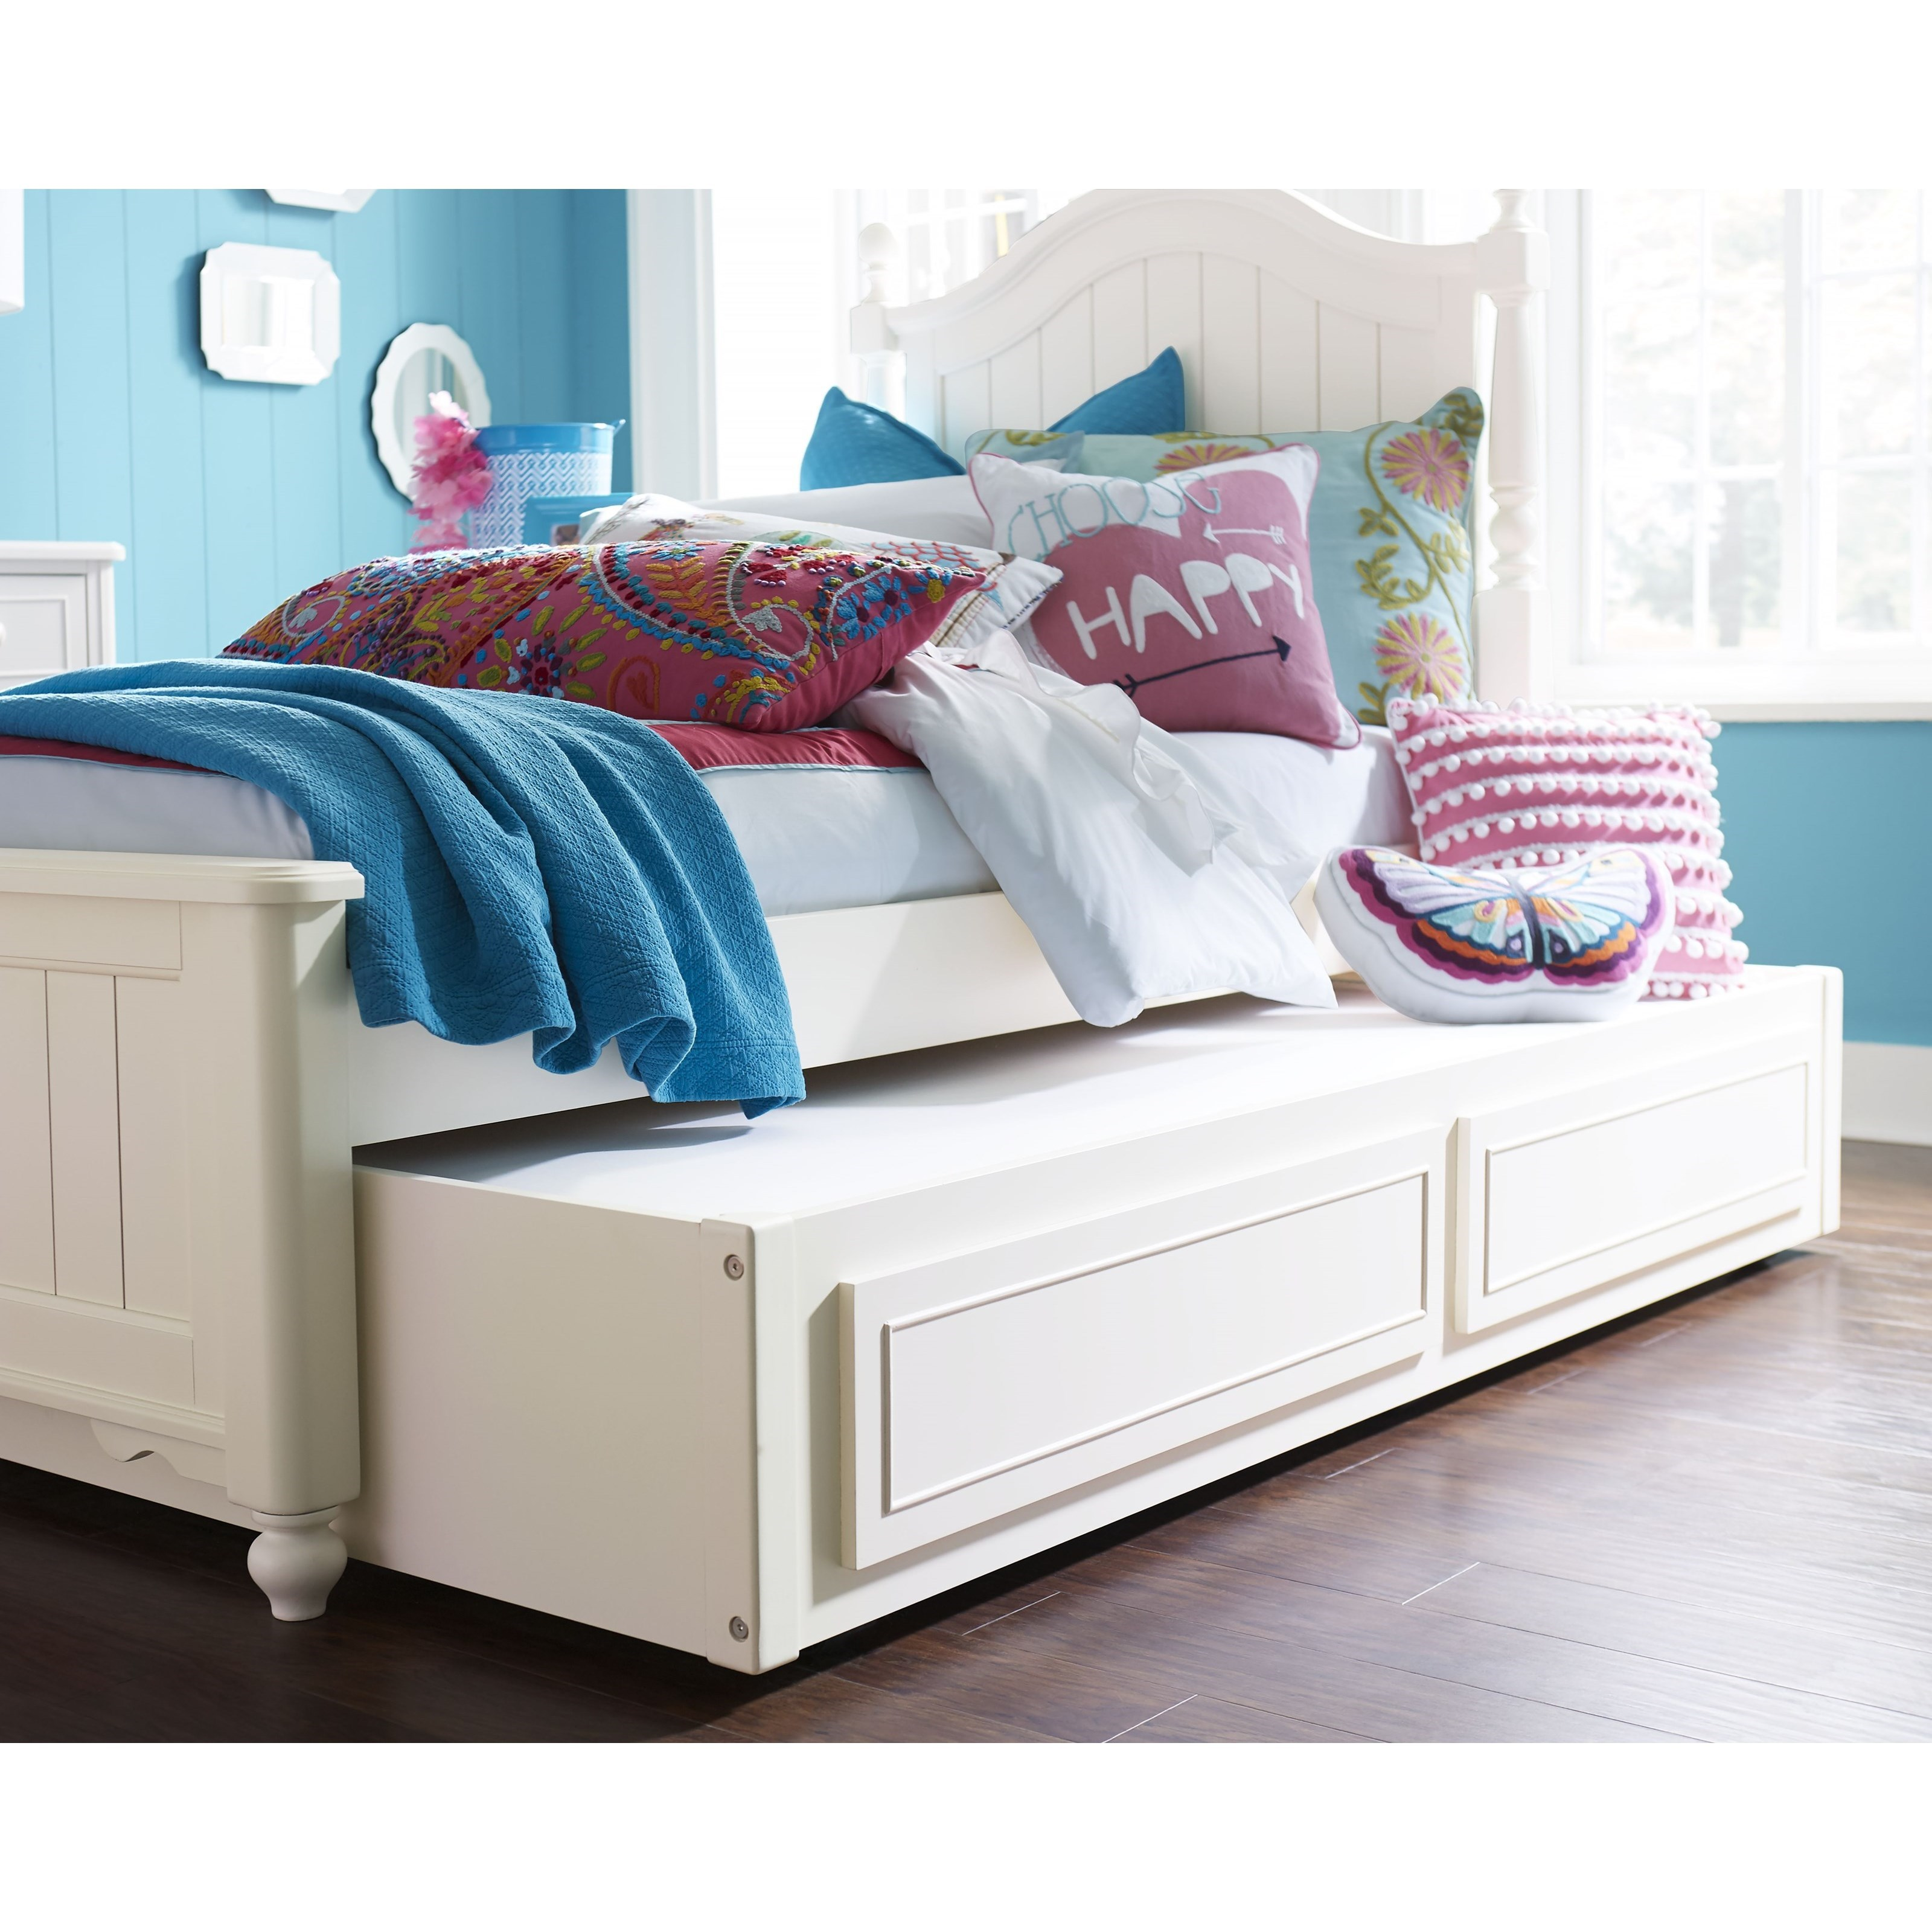 Legacy Classic Kids Summerset 6481 4204k 9500 Full Bed